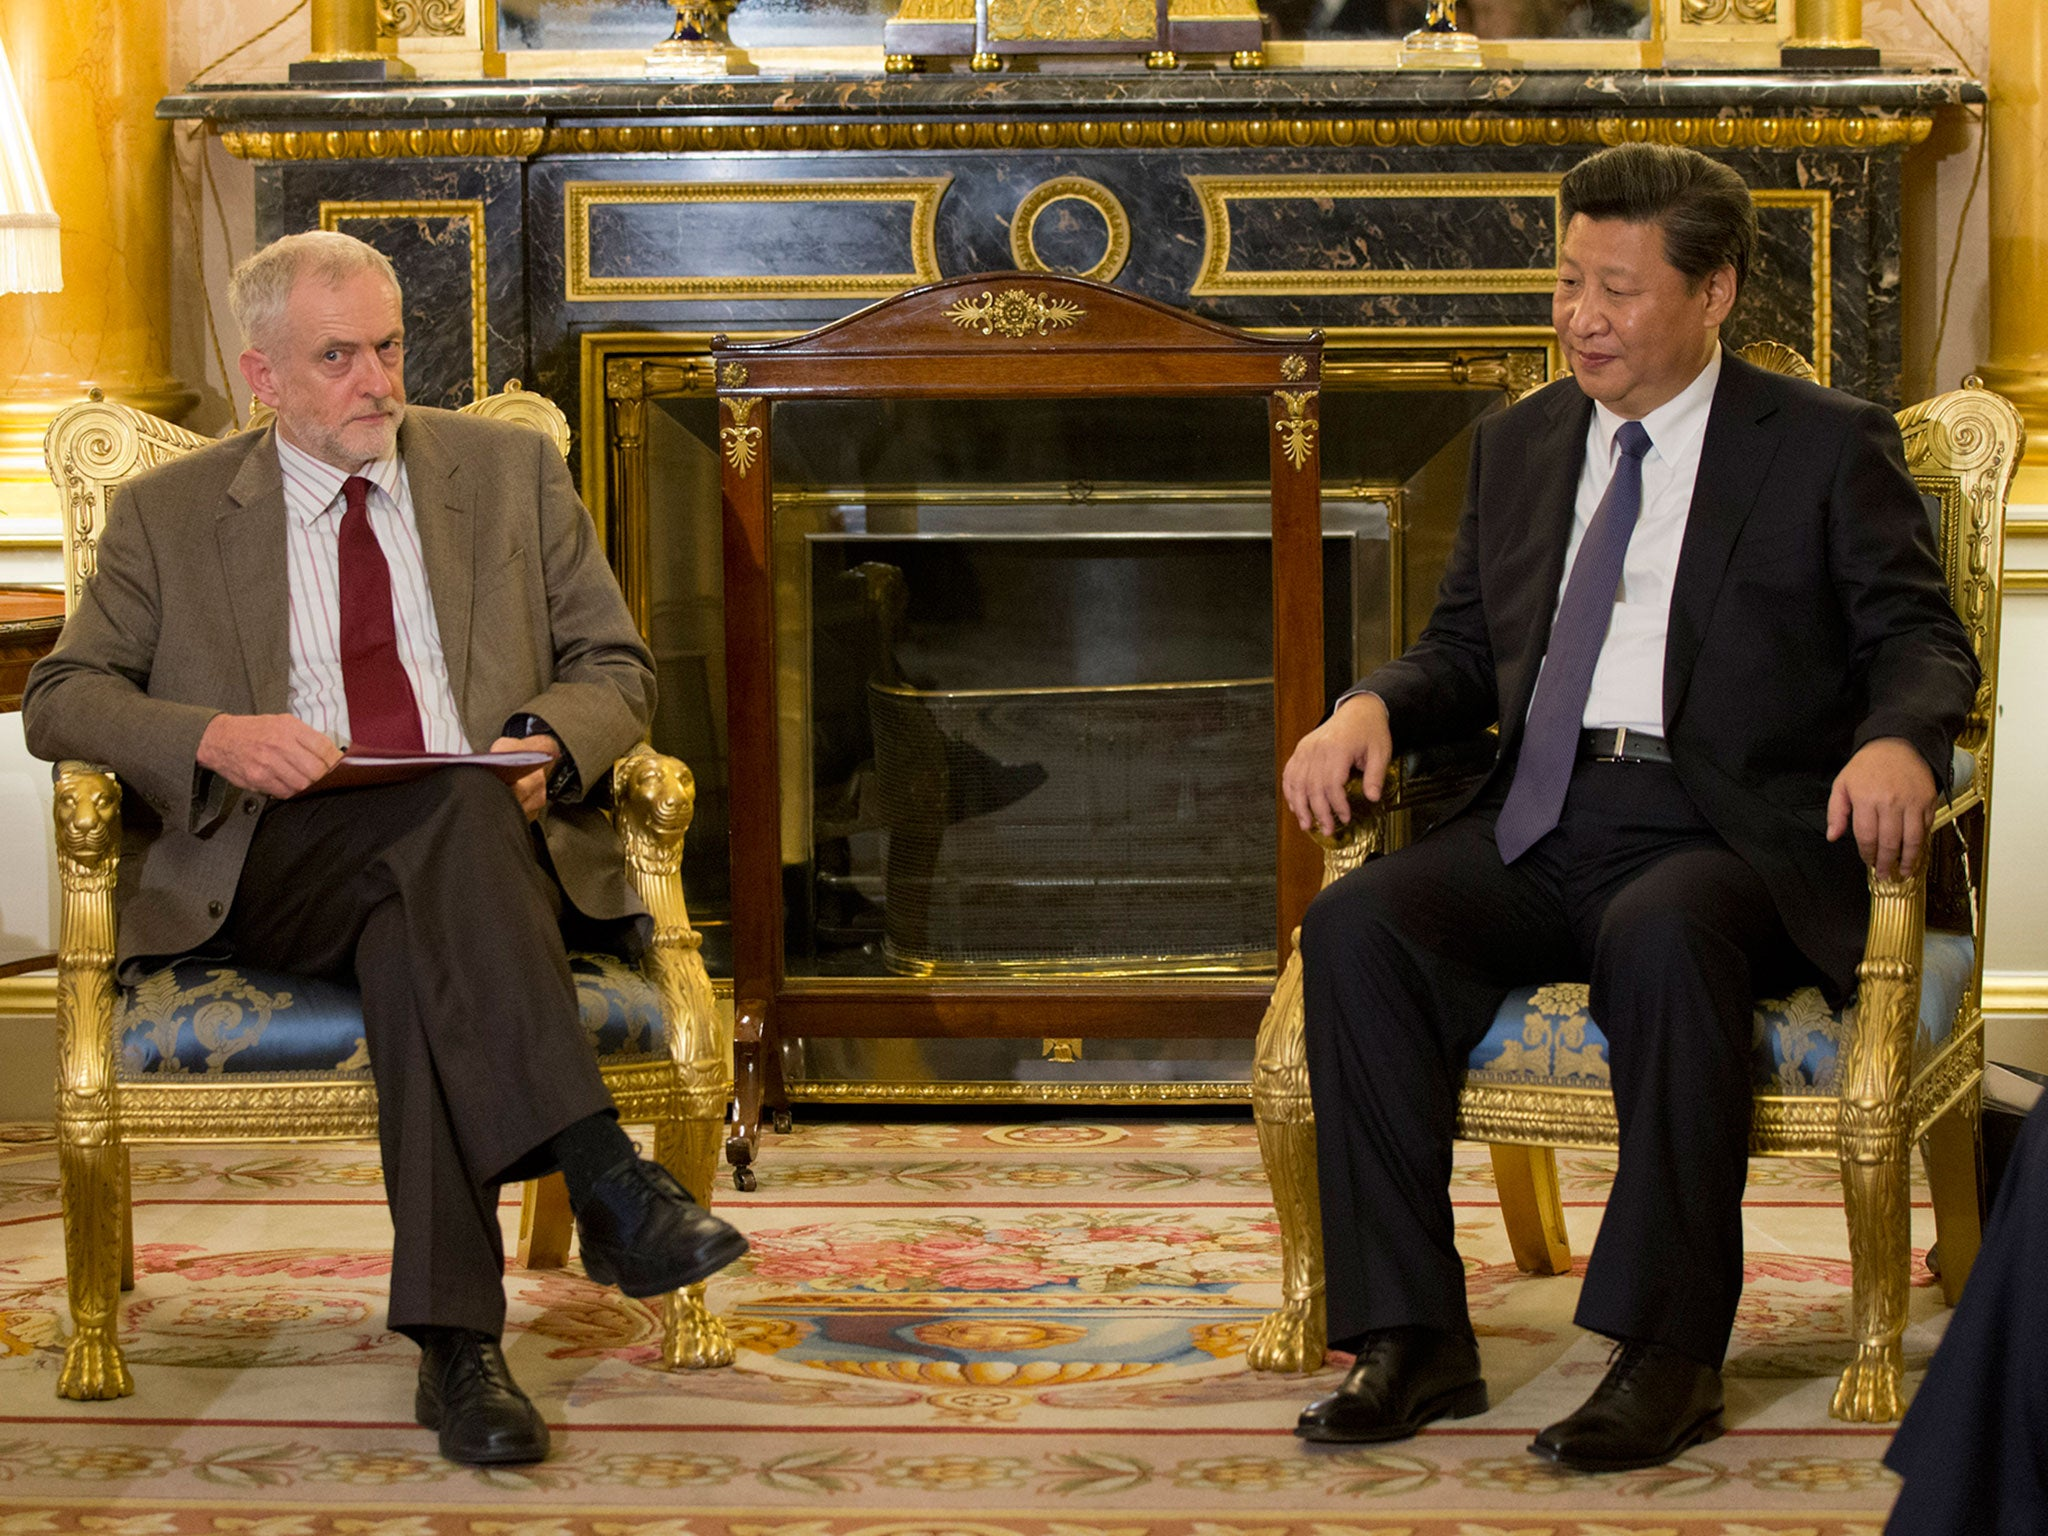 Jeremy corbyn raises human rights record with chinese president xi jinping the independent